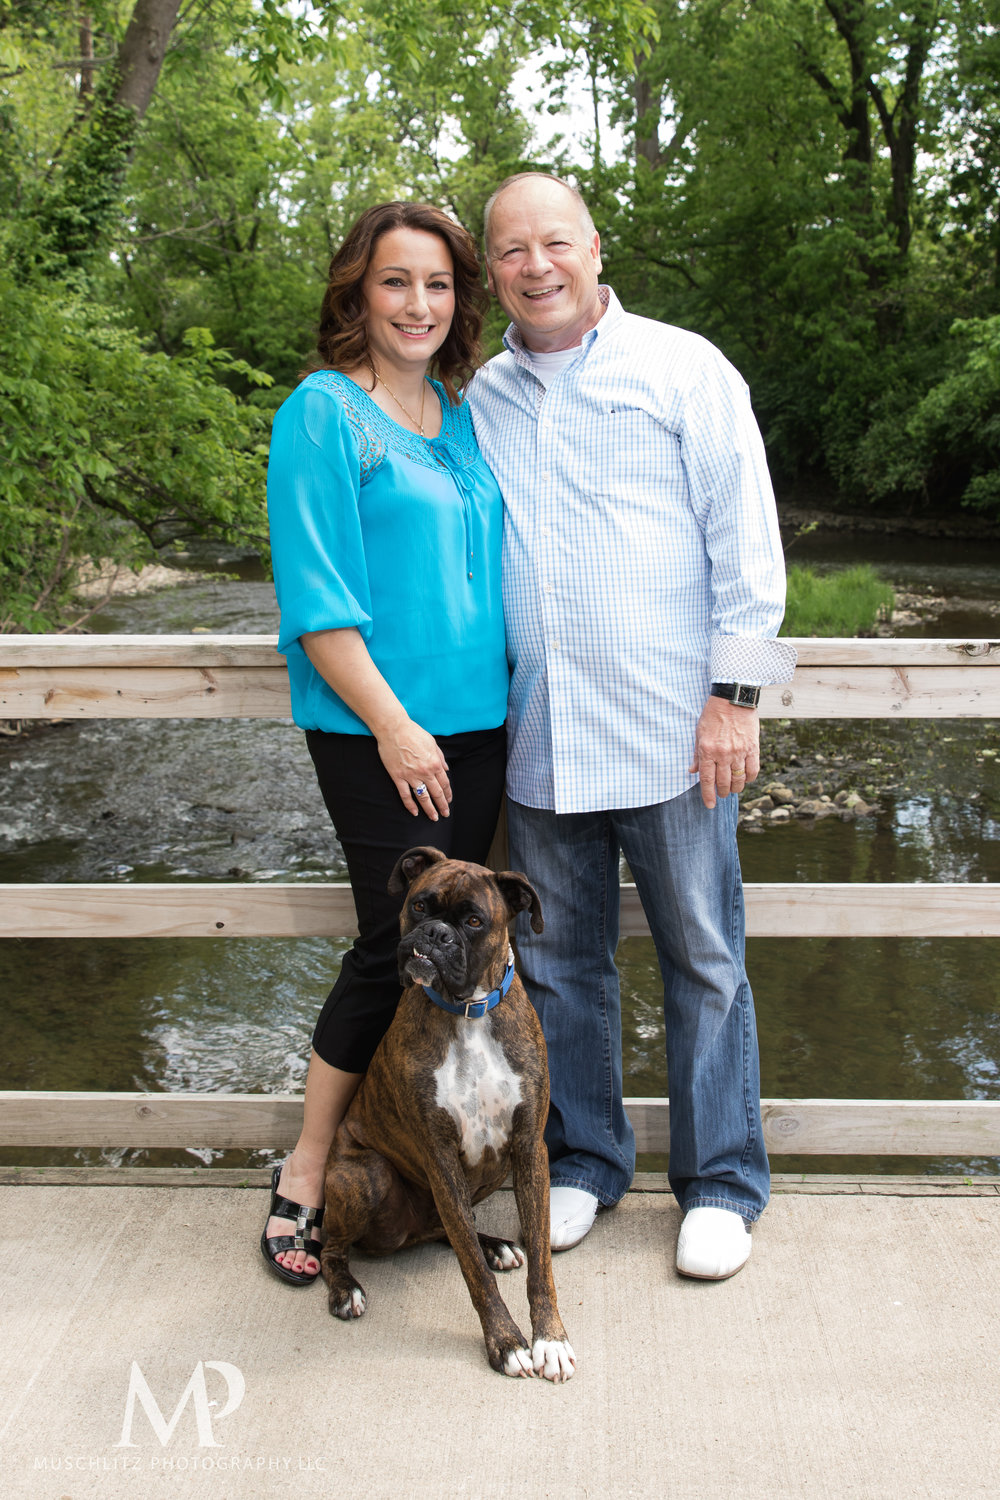 anniversary-couple-portrait-session-creekside-park-plaza-gahanna-ohio-boxer-dog-muschlitz-photography-005.JPG